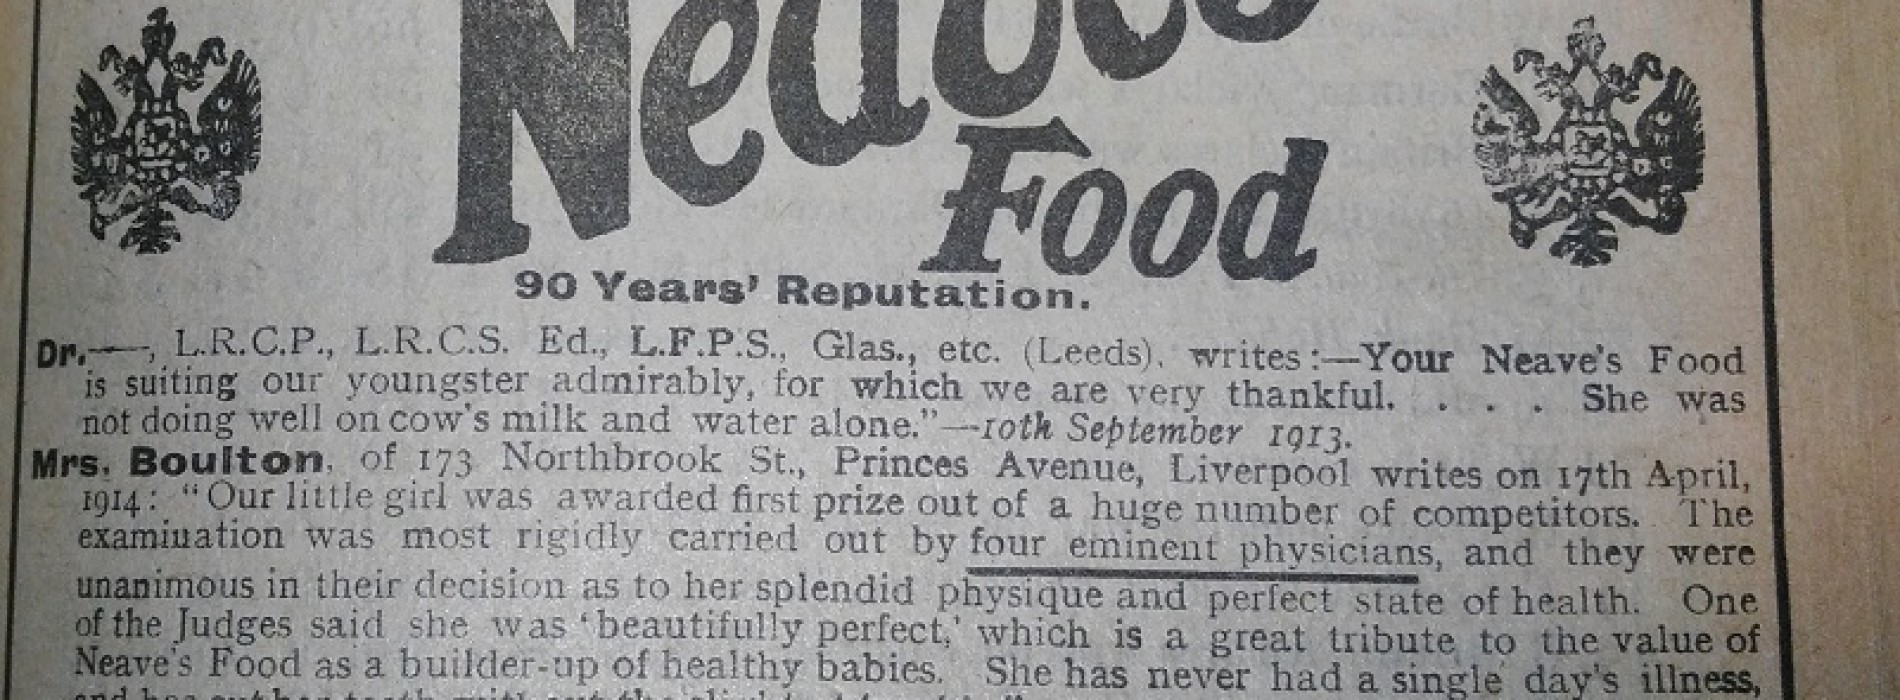 The Horribly Misleading (And Dangerous) Advertising of 1916